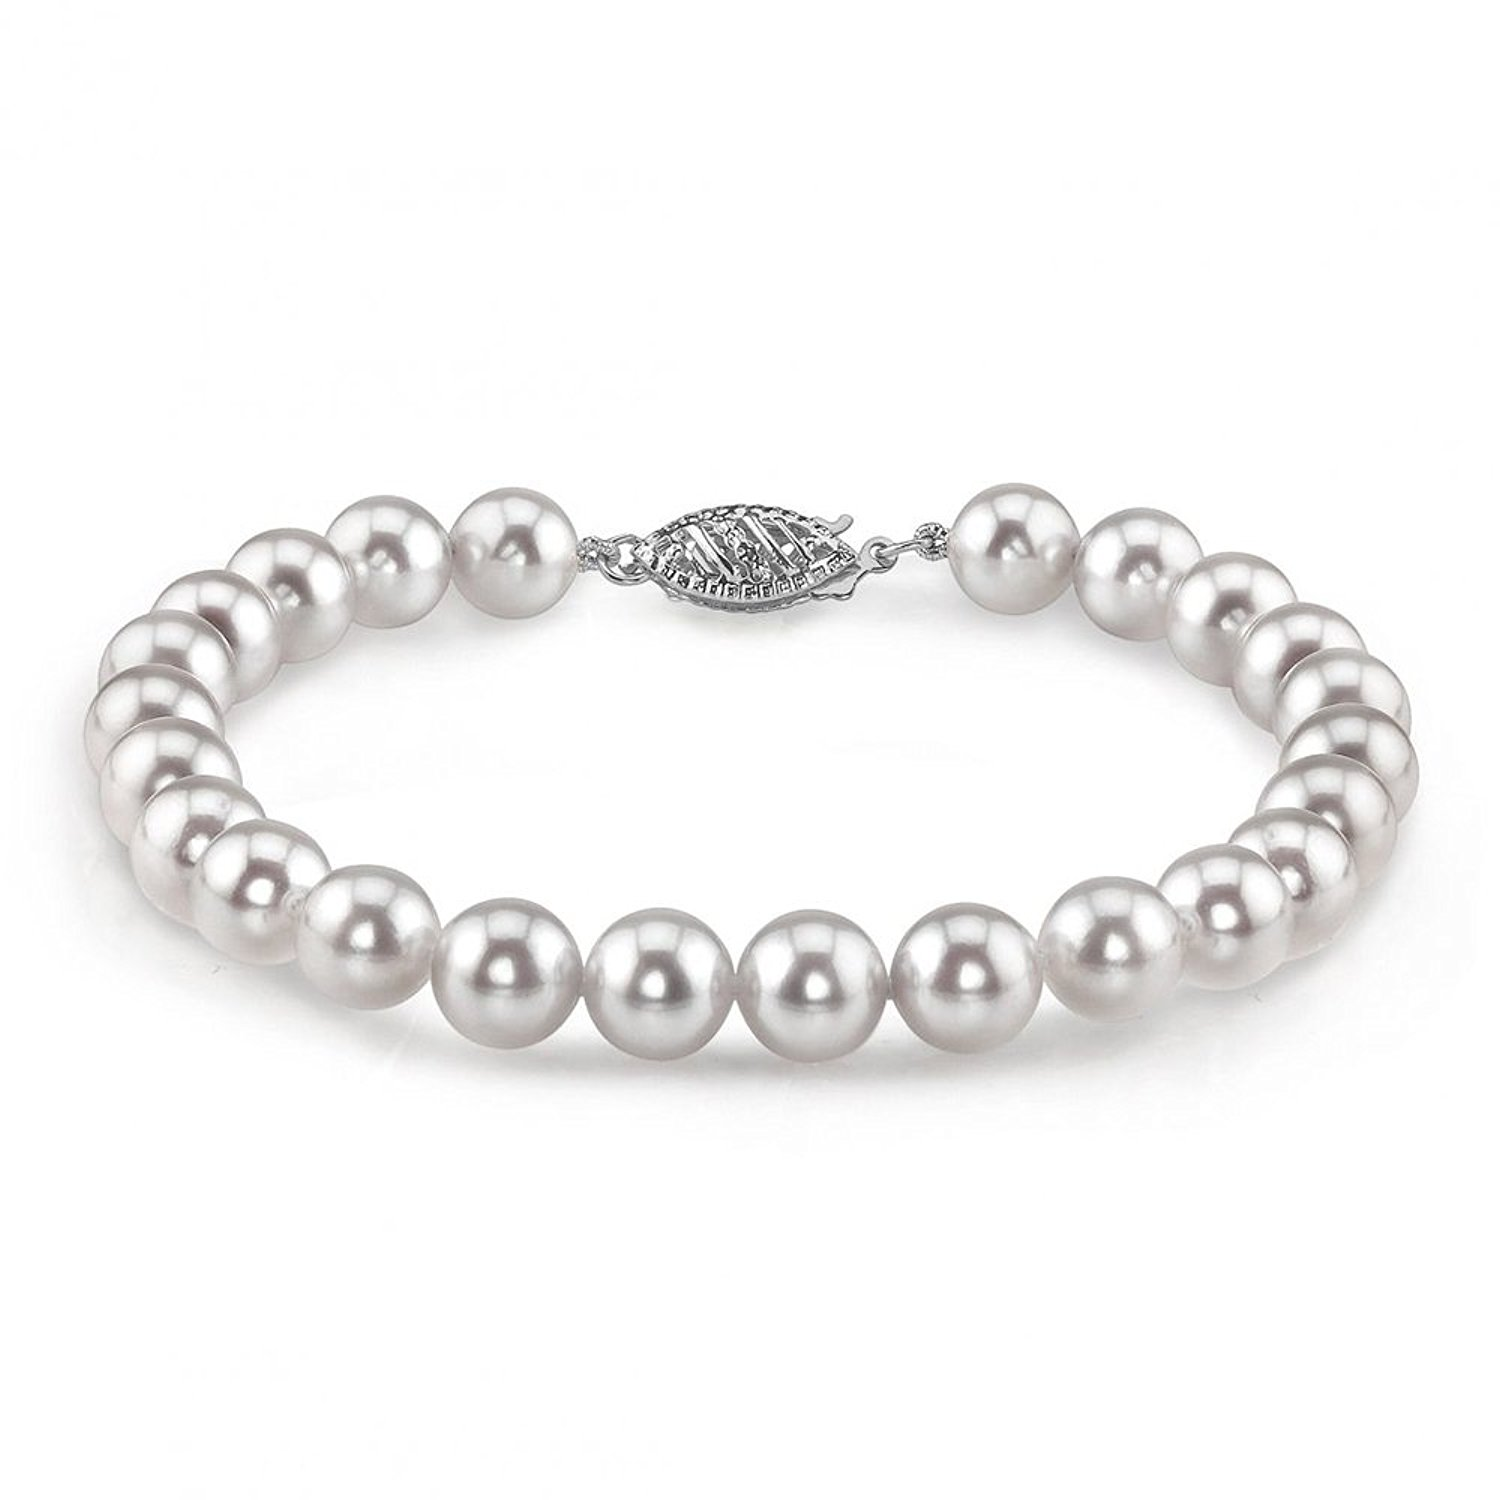 The Pearl Source 14K Gold 5.5-6.0mm Japanese Akoya Saltwater White Cultured Pearl Bracelet